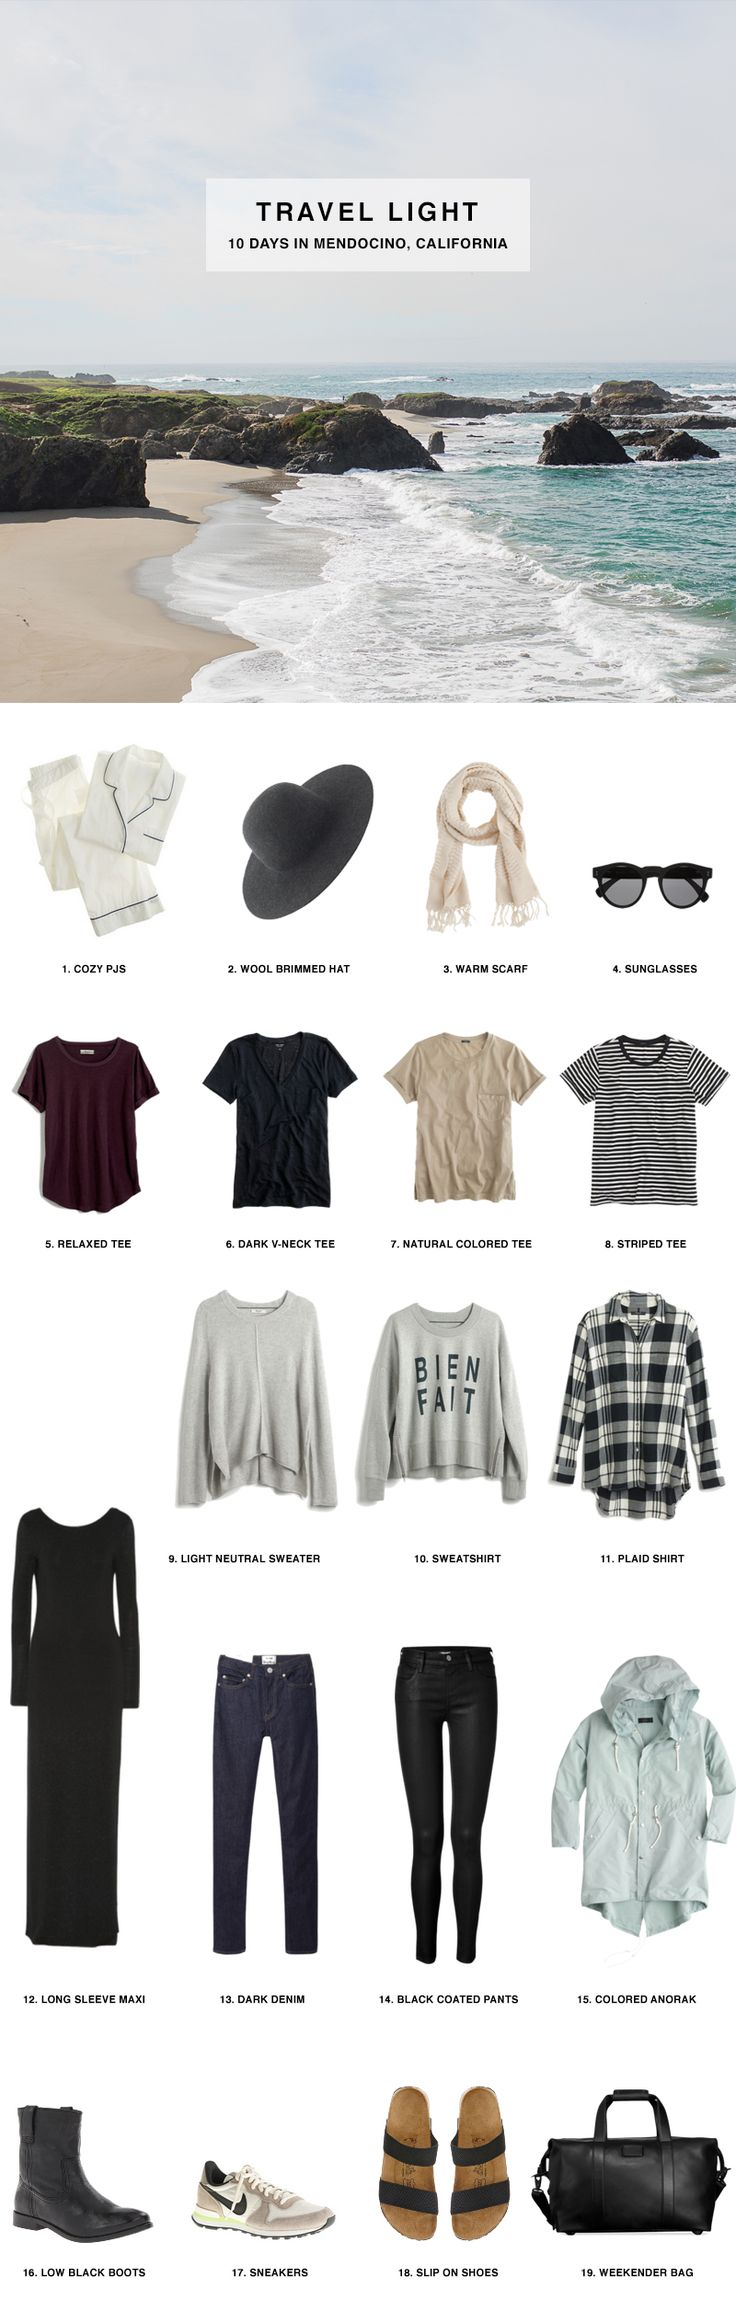 1. Cozy PJ's / 2. Wool Brimmed Hat / 3. Warm Scarf / 4. Sunglasses / 5. Relaxed Tee / 6. Dark V-Neck Tee / 7. Natural Colored Tee / 8. Striped Tee / 9. Light Neutral Sweater / 10. Bien Fait Sweatshirt